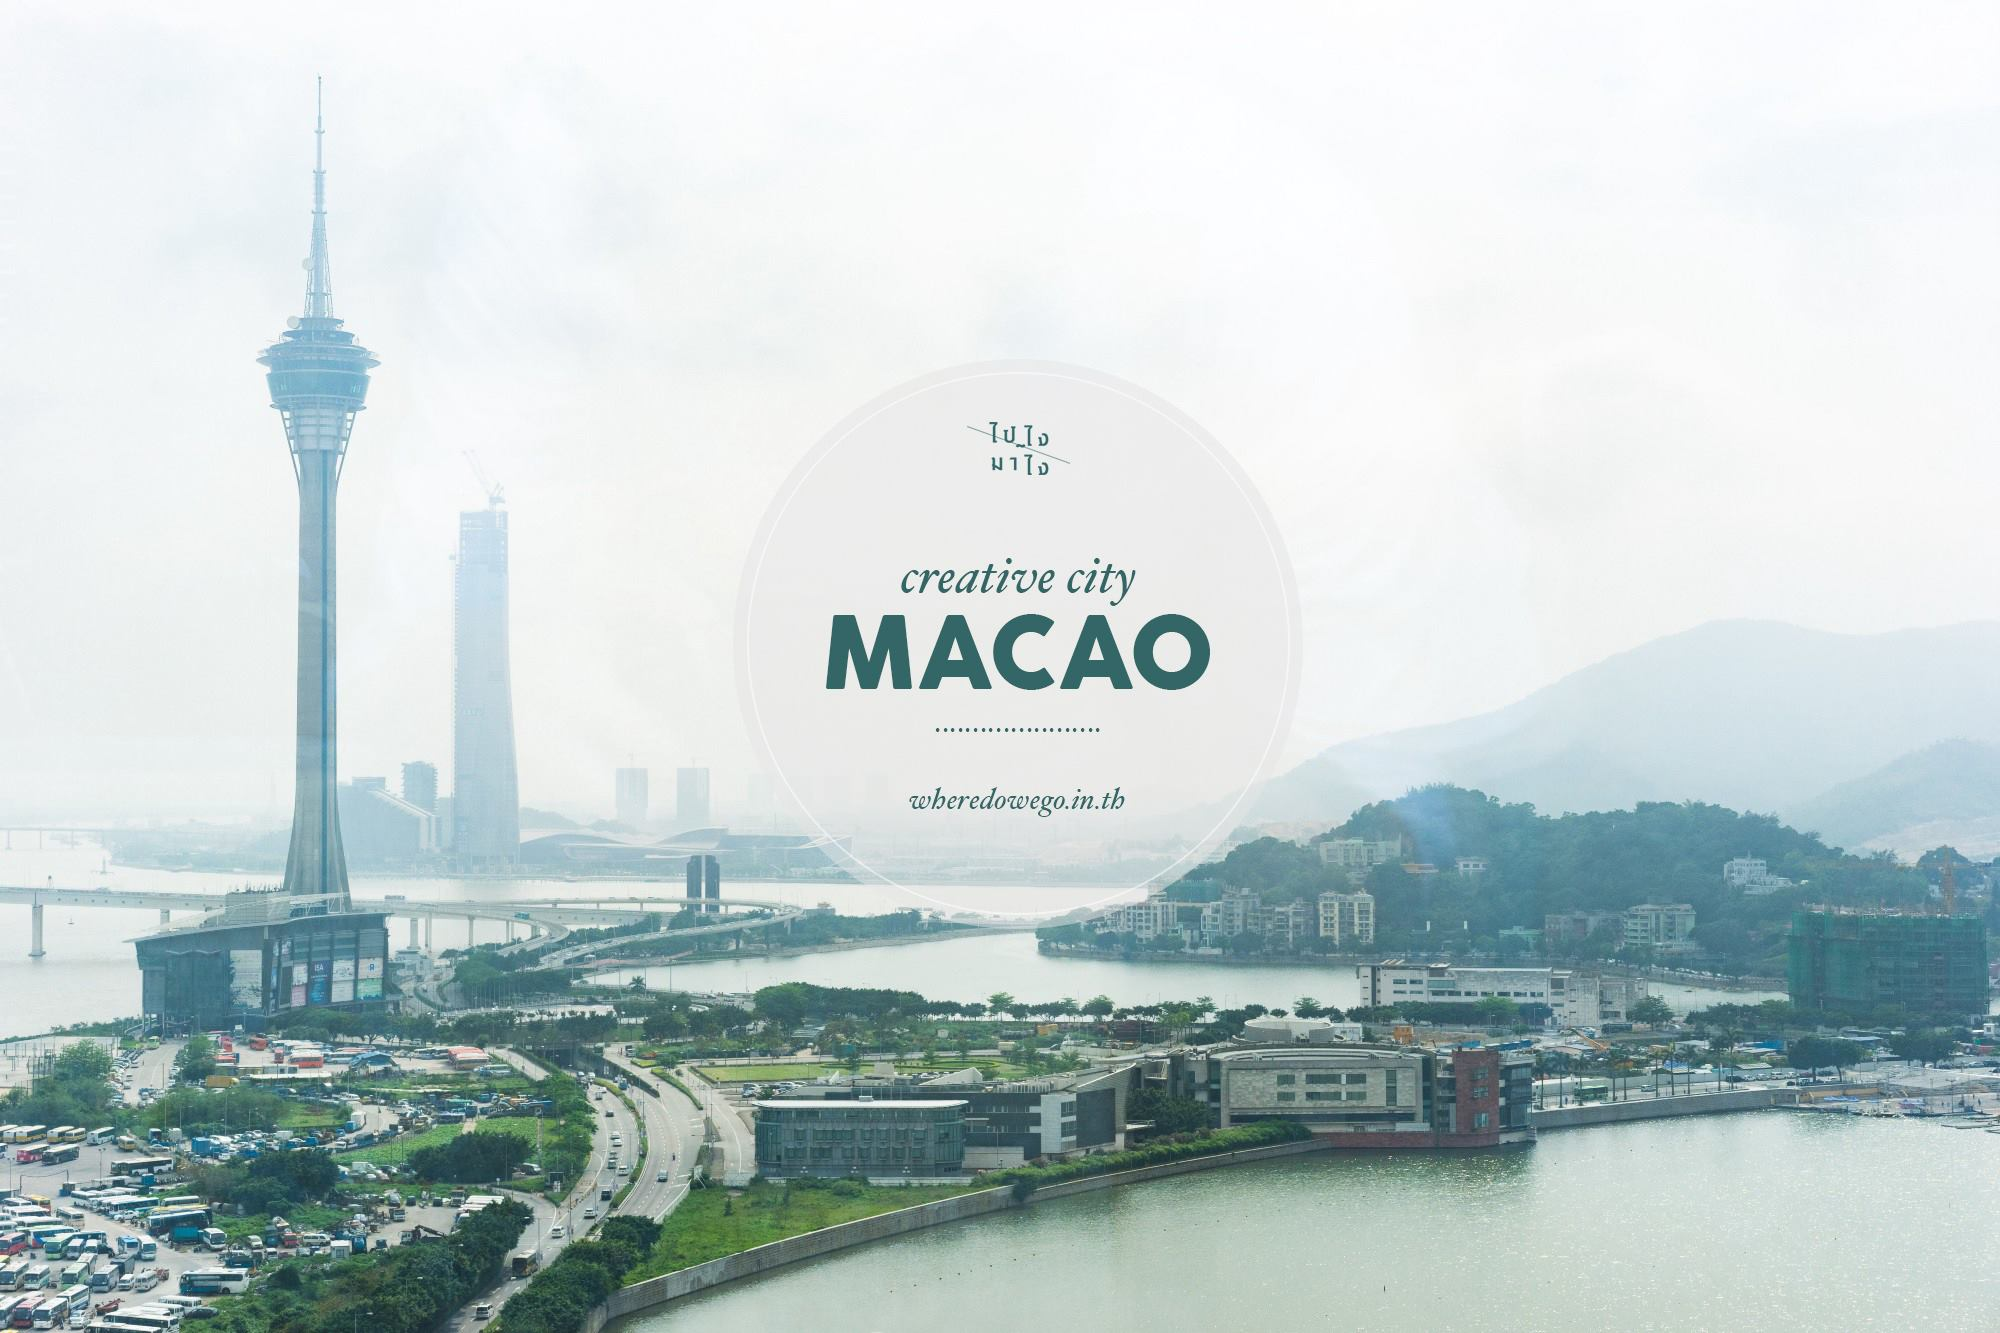 MACAO, Creative City.